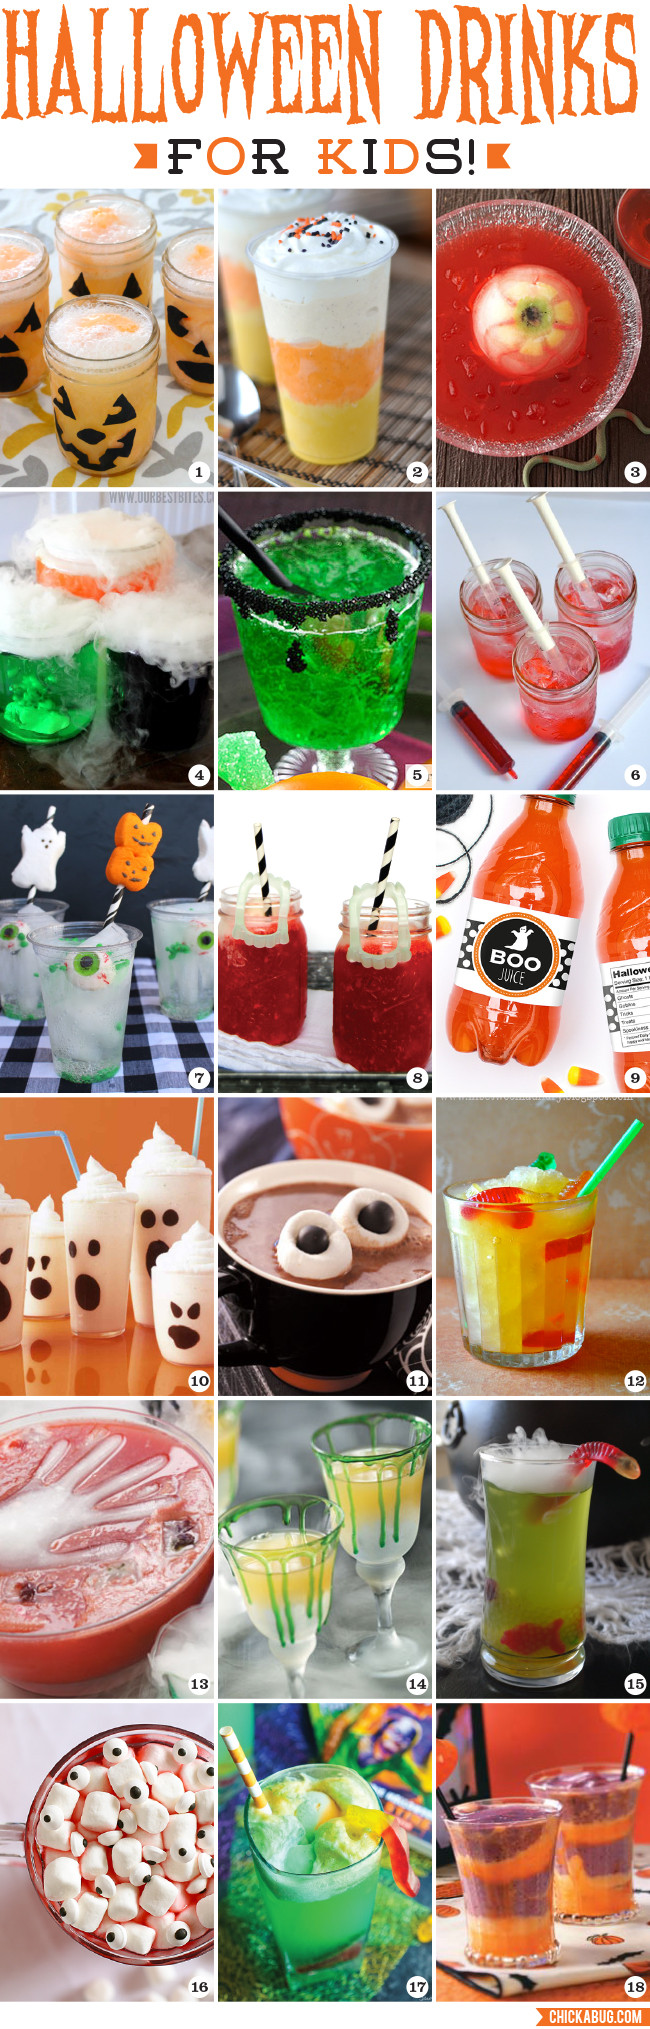 Halloween Drinks For Kids  Halloween Drinks for Kids